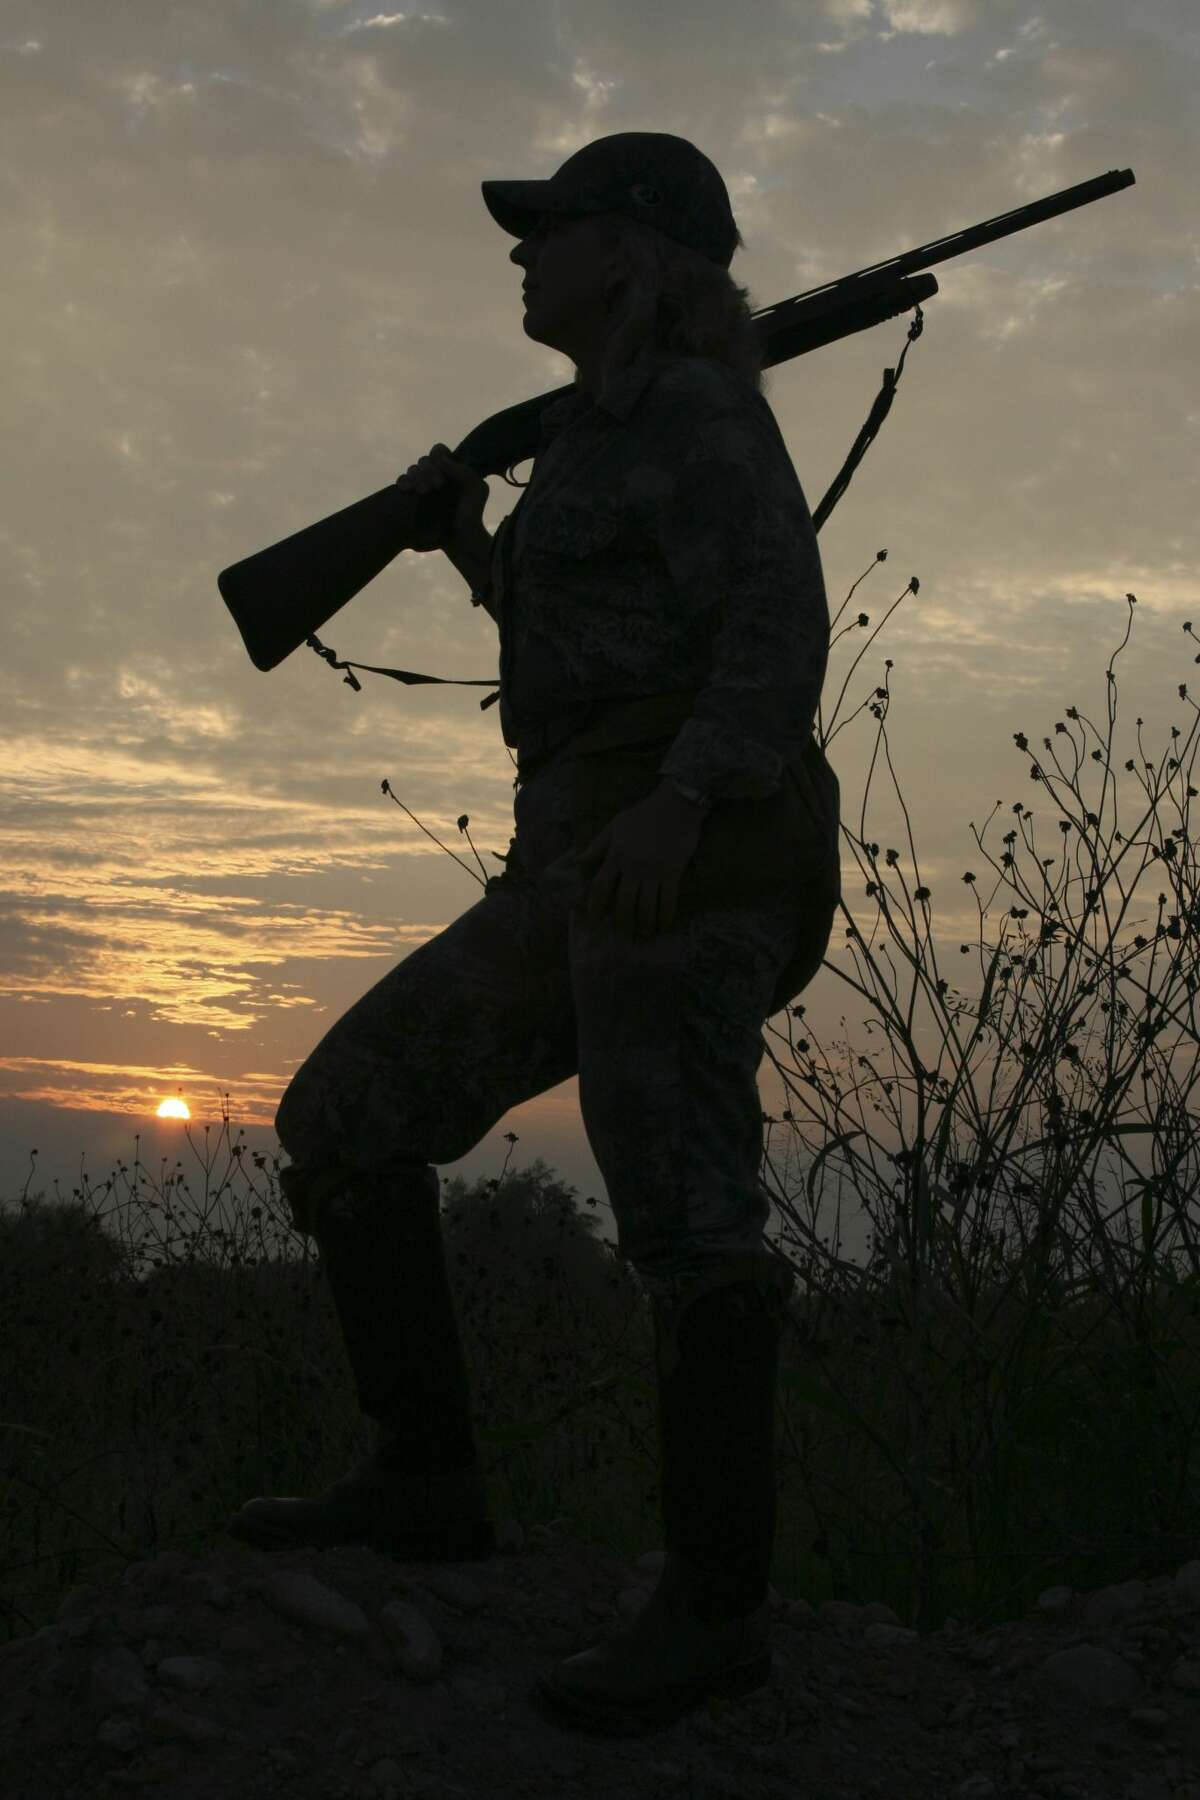 Texas hunters anticipating the Sept. 1 opening of dove season in most of the state will have to purchase 2018-19 licenses before heading afield. Those licenses become available Aug. 15, giving hunters opportunity to beat what can be a frustrating last-minute crush at license outlets.